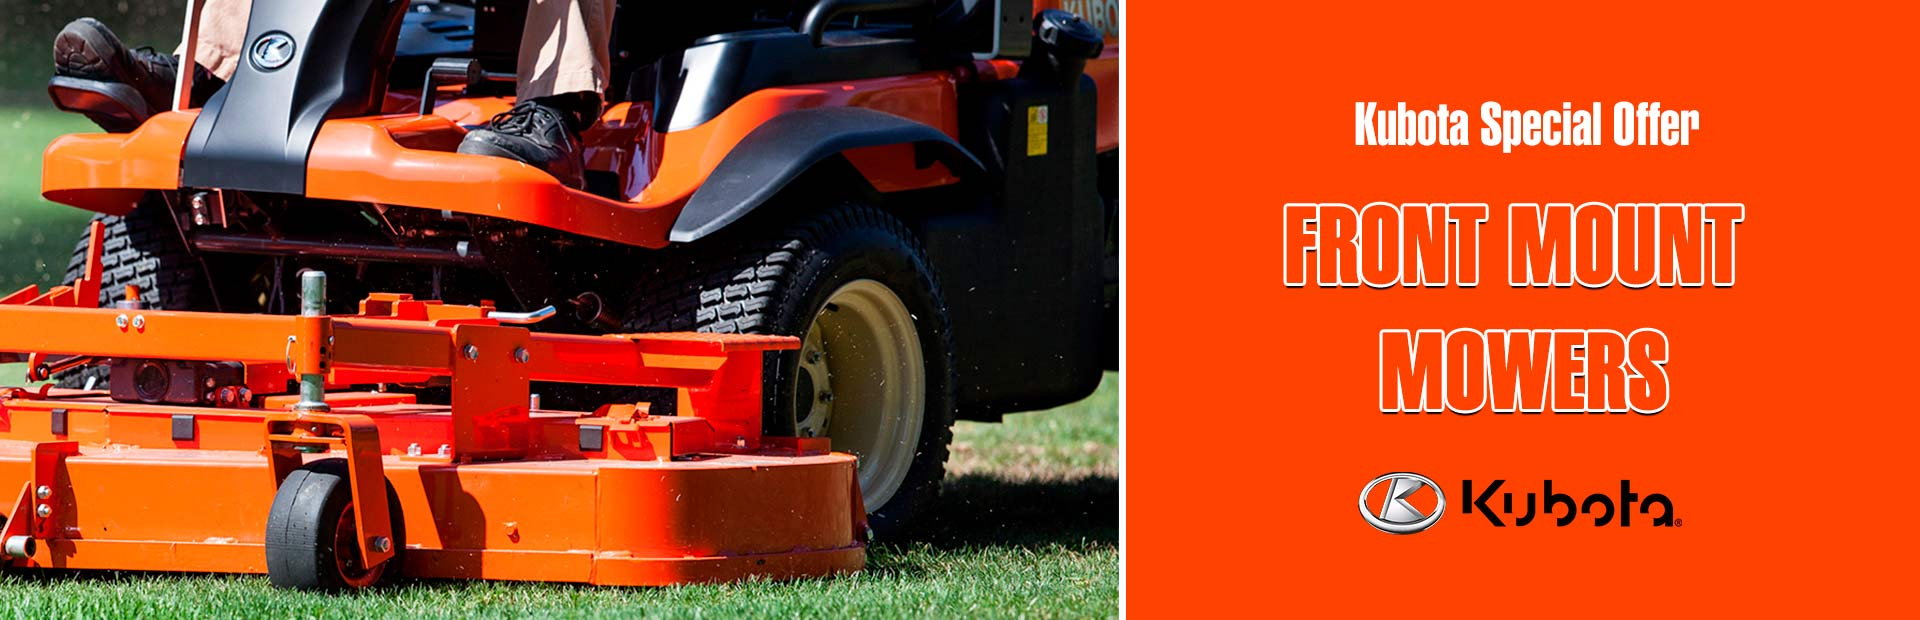 Kubota: Kubota Special Offer - Front Mount Mowers